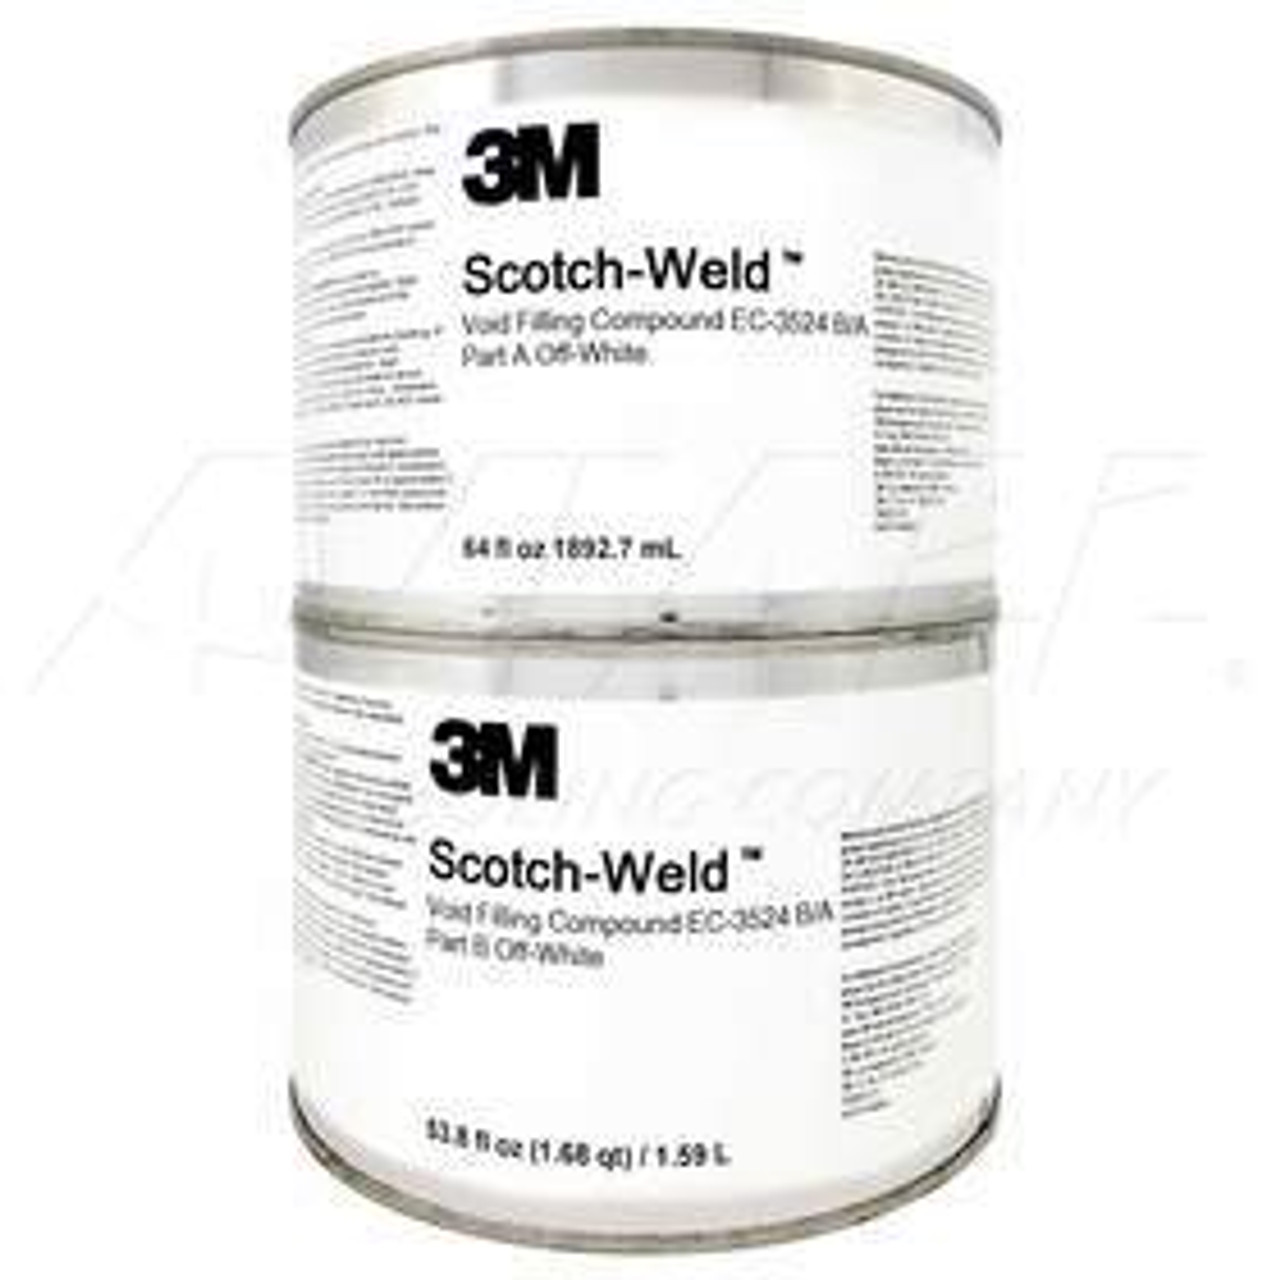 3M™ 048011-56923 Scotch-Weld™ EC-3524 B/A Off-White Void Filling Compound - Gallon Kit Part#: 048011-56923by 3M™ Scotch-Weld™ 3M Scotch-Weld Void Filling and Edge Sealing Compound EC-3524 B/A is a fire retardant, void filling, edge-sealing, potting and complex gap-filling epoxy compound for aerospace weight reduction. It is also effective as an abradable compound in aircraft engines. EC-3524 B/A provides a 90 minute worklife and is fully cured within 48 hours at 75°F (24°C).